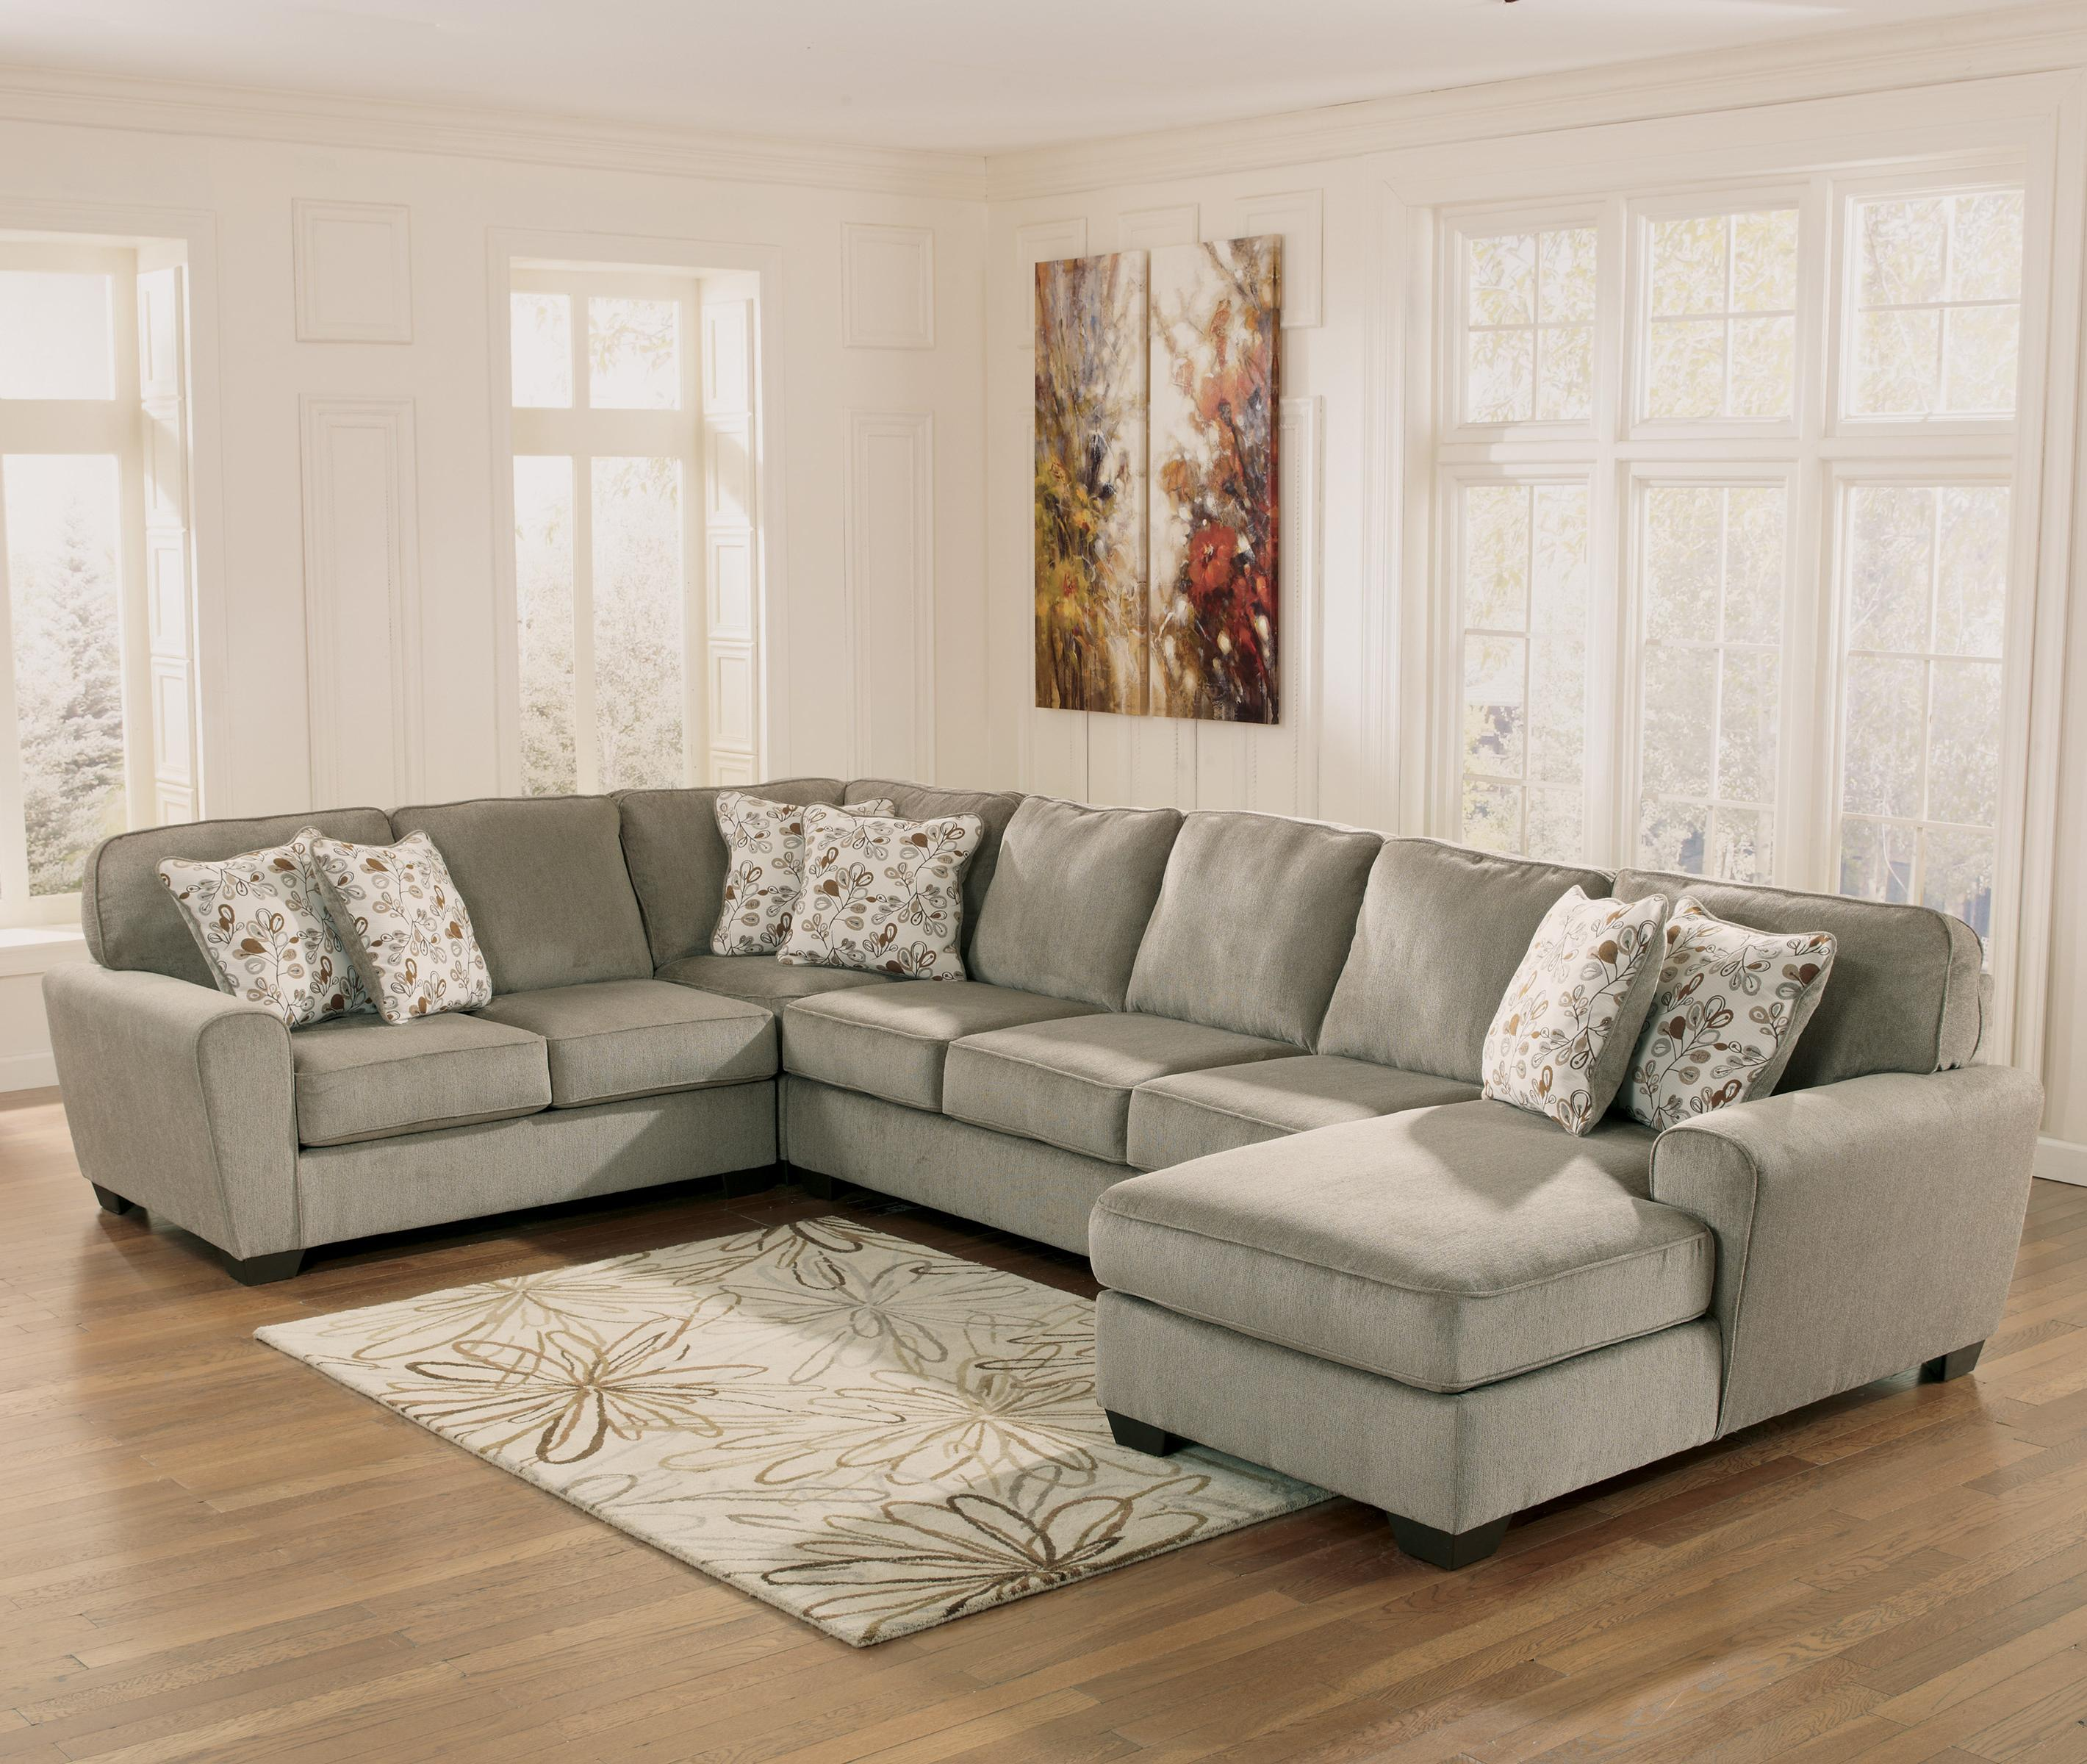 Ashleys Furniture | Dania Furniture | J&j Furniture